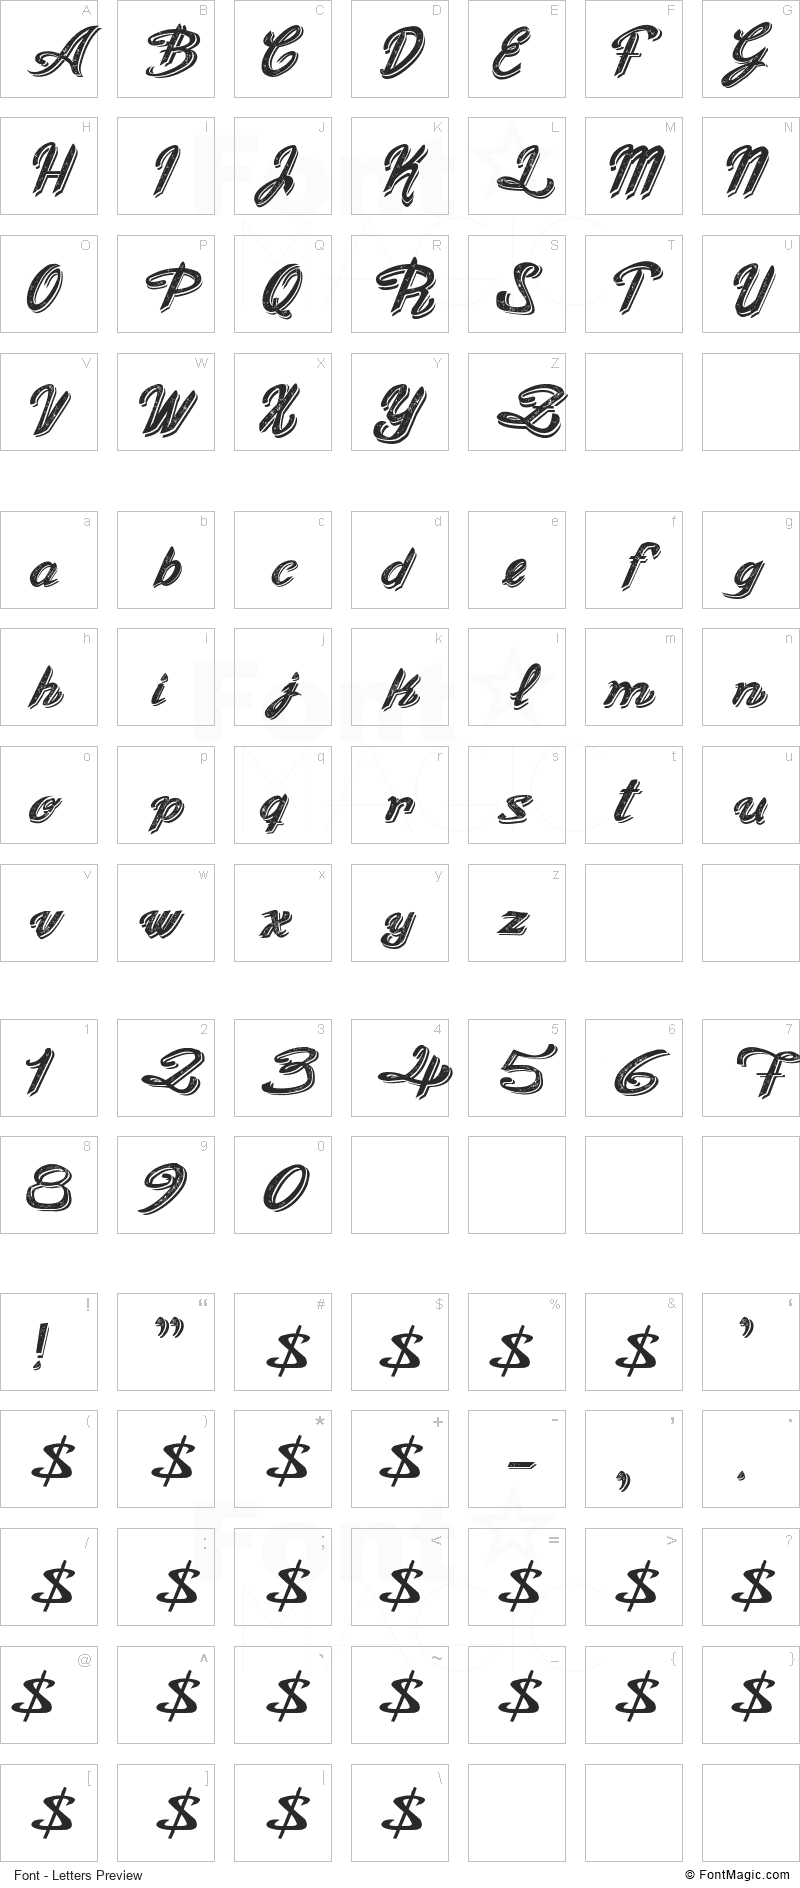 Old Figaro Cursive Font - All Latters Preview Chart